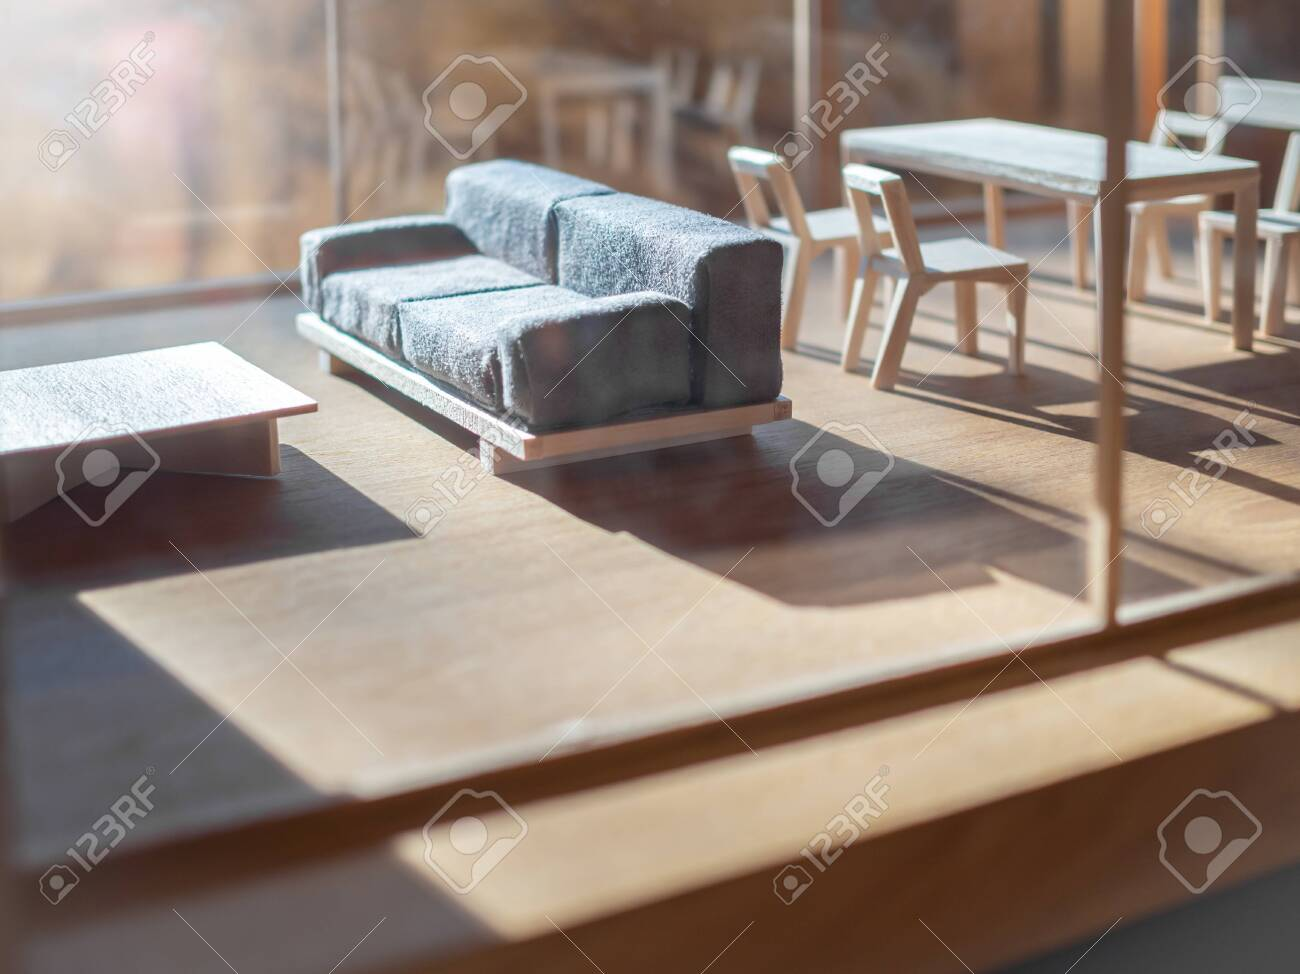 Admirable Sofa And Wooden Table Set In Living Room Balsa Wood Model Miniature Pabps2019 Chair Design Images Pabps2019Com